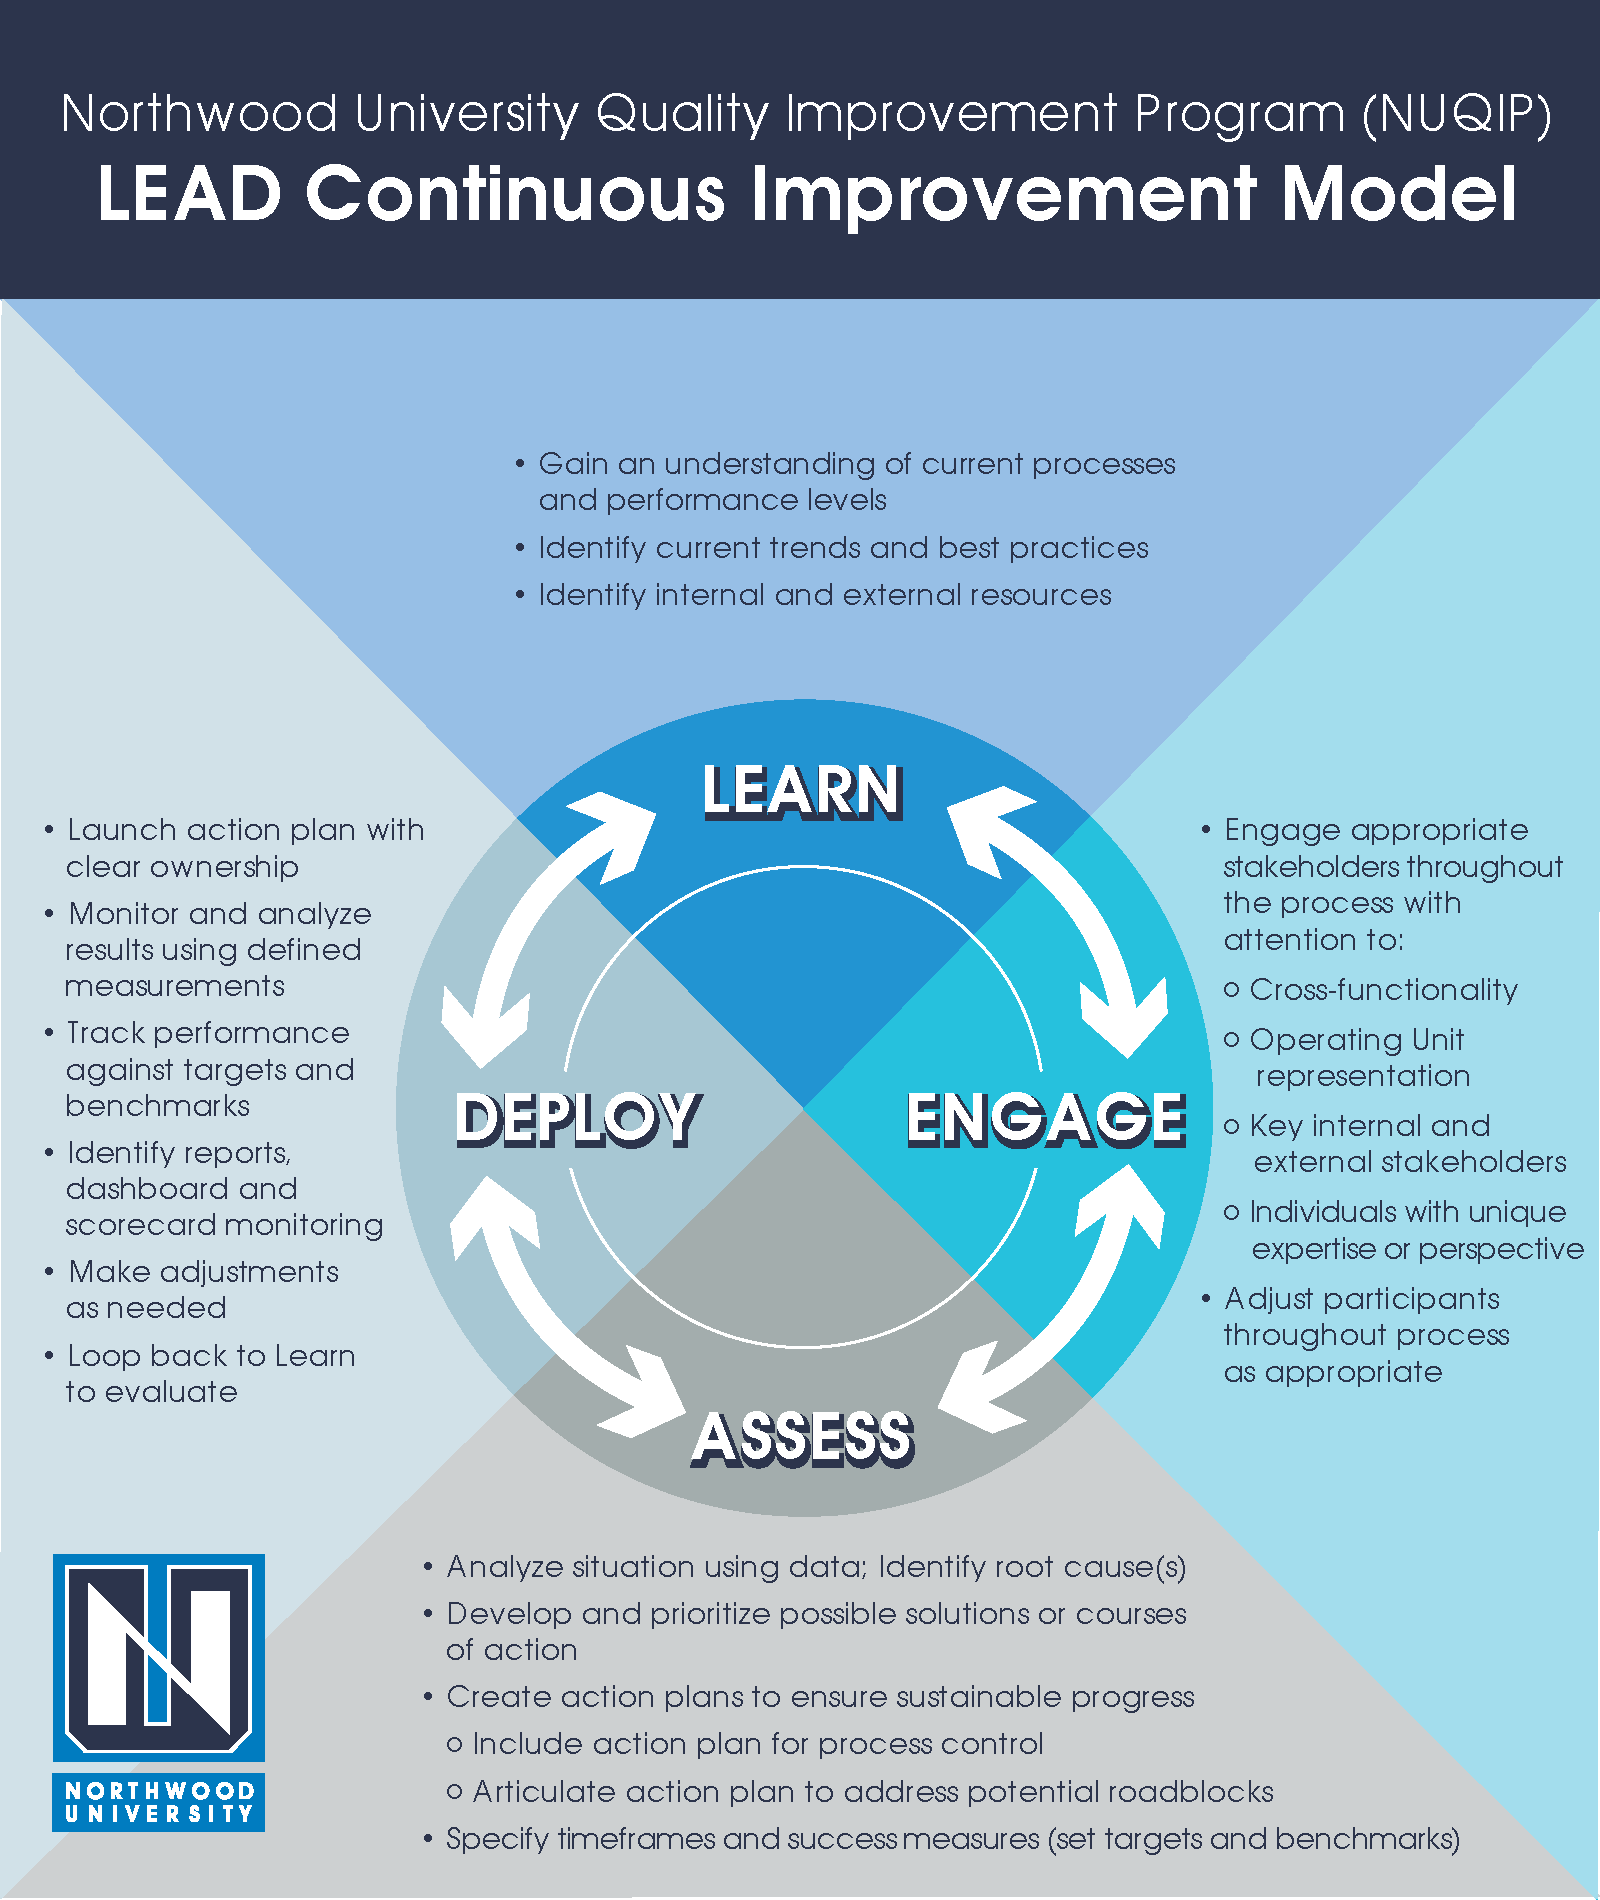 What is New with LEAD? – NUQIP NOW!